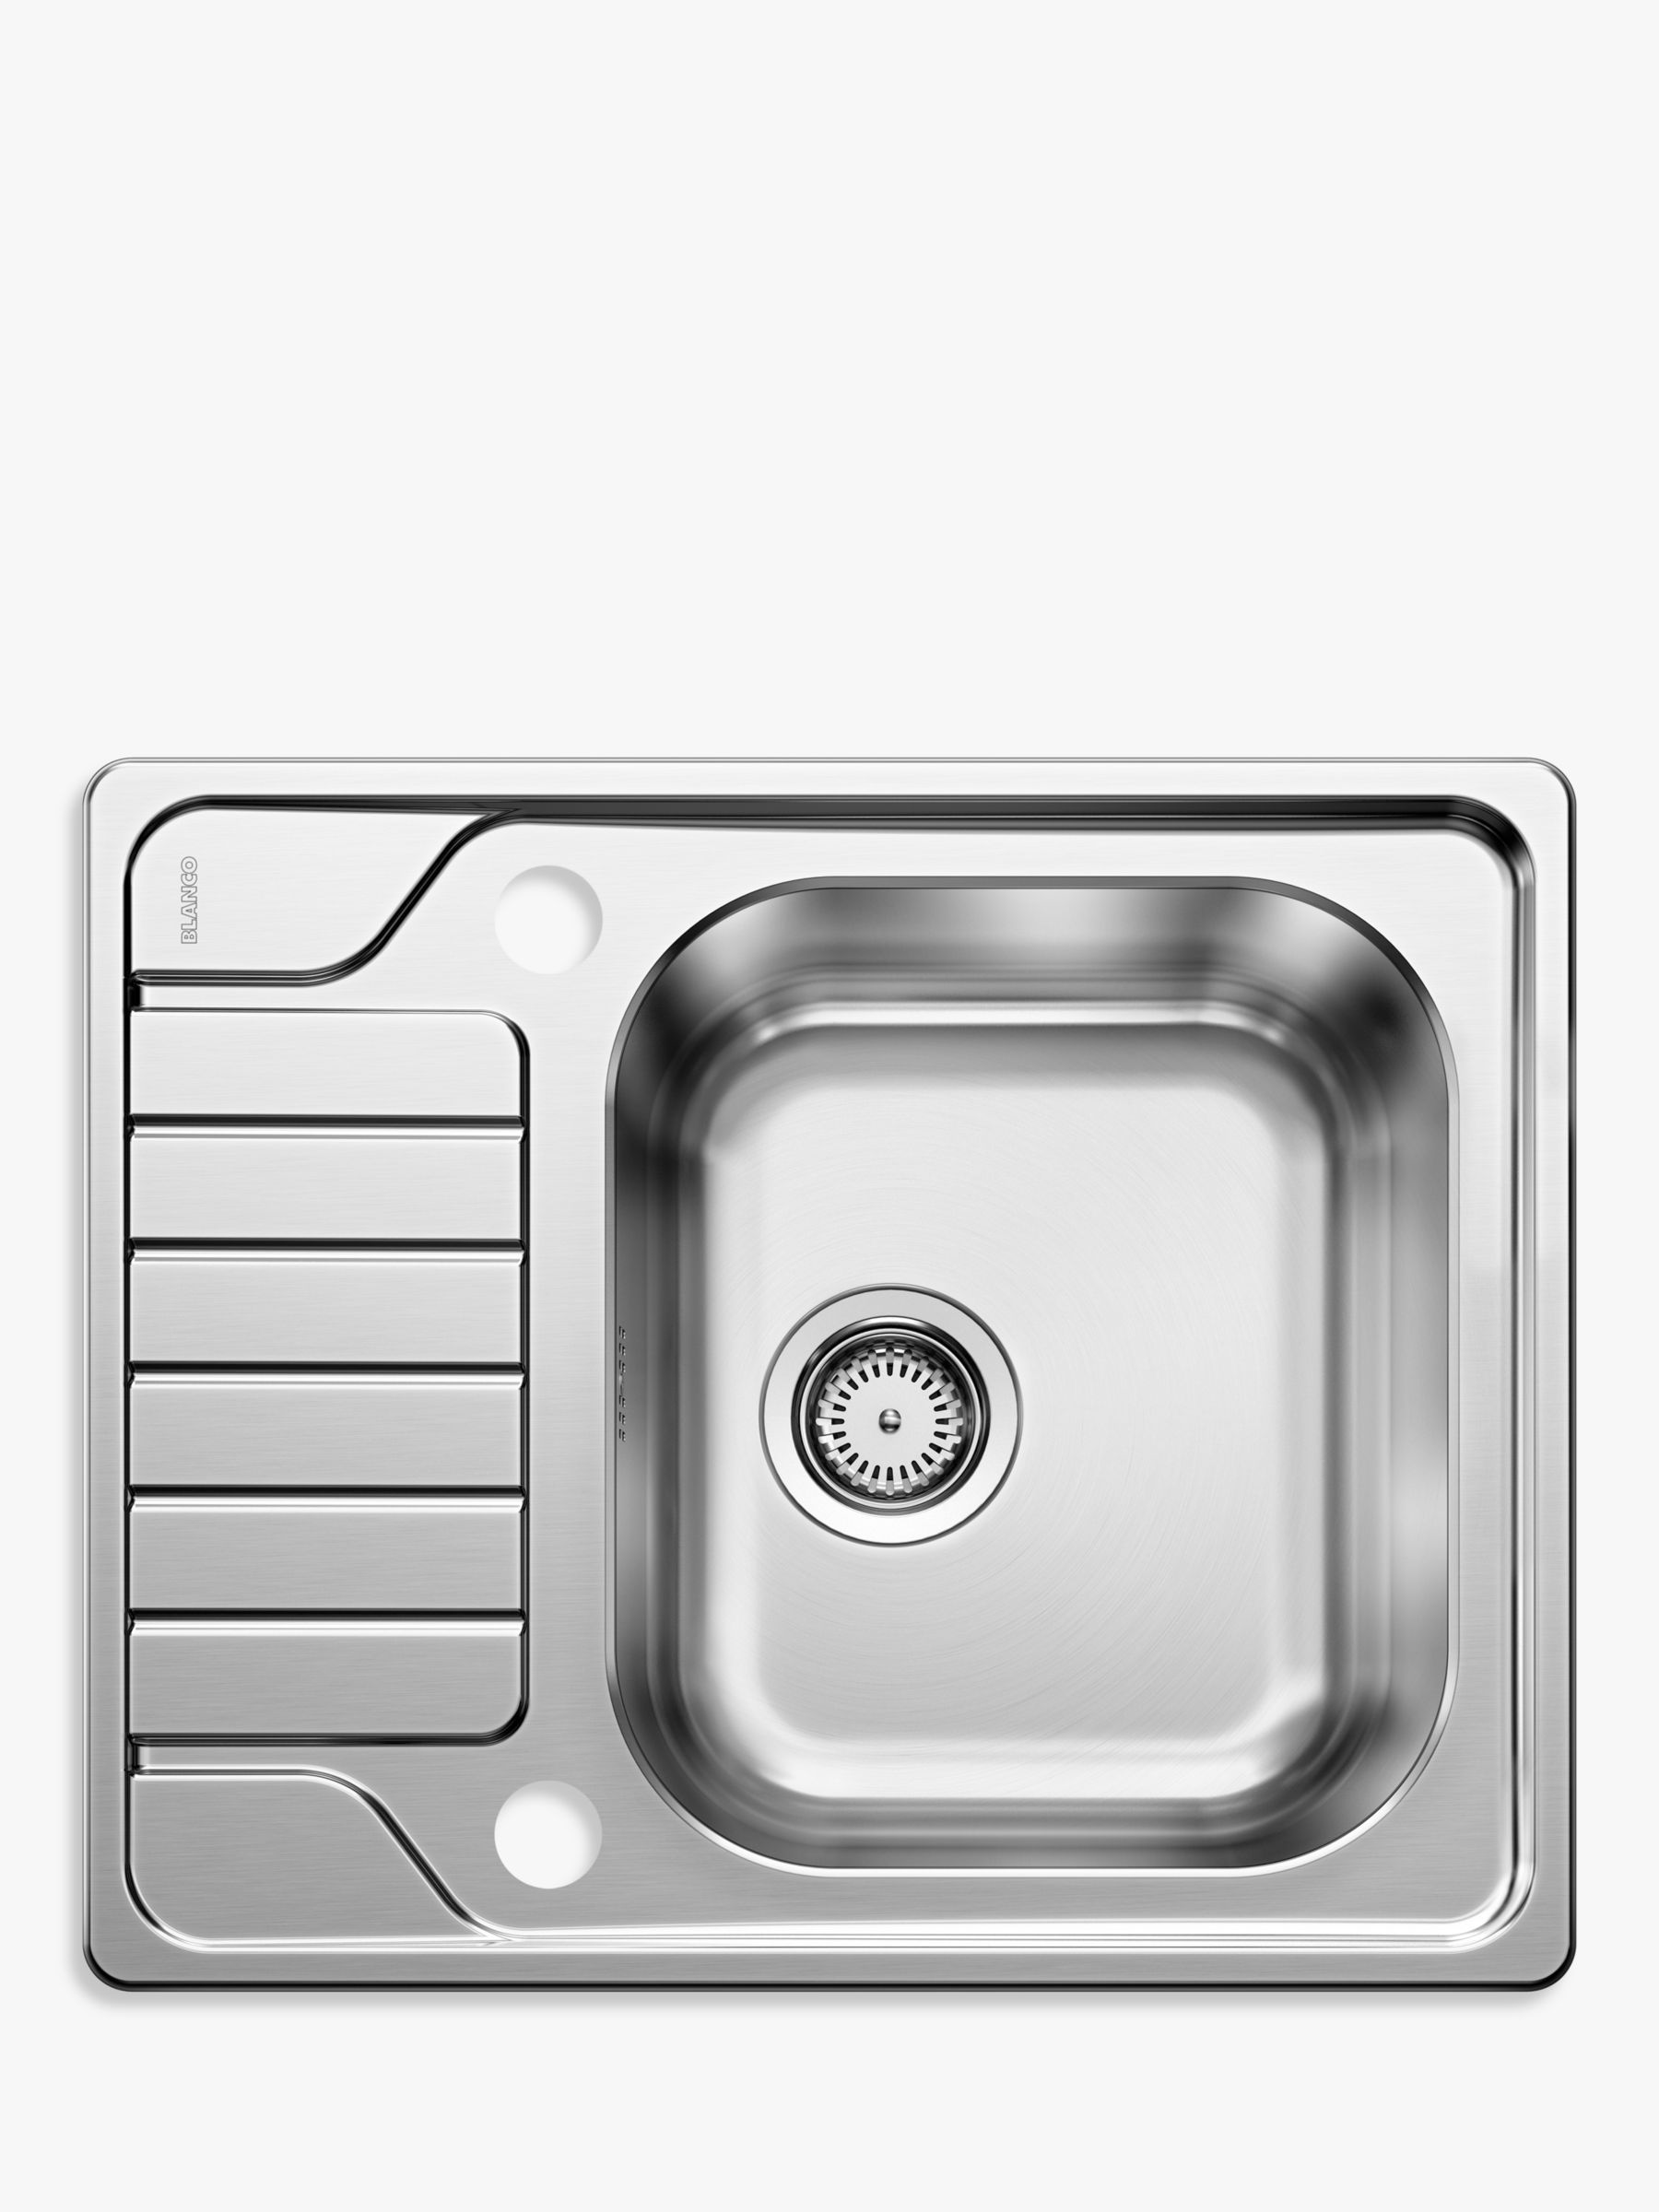 Blanco Dinas 45s Single Bowl Inset Kitchen Sink Stainless Steel